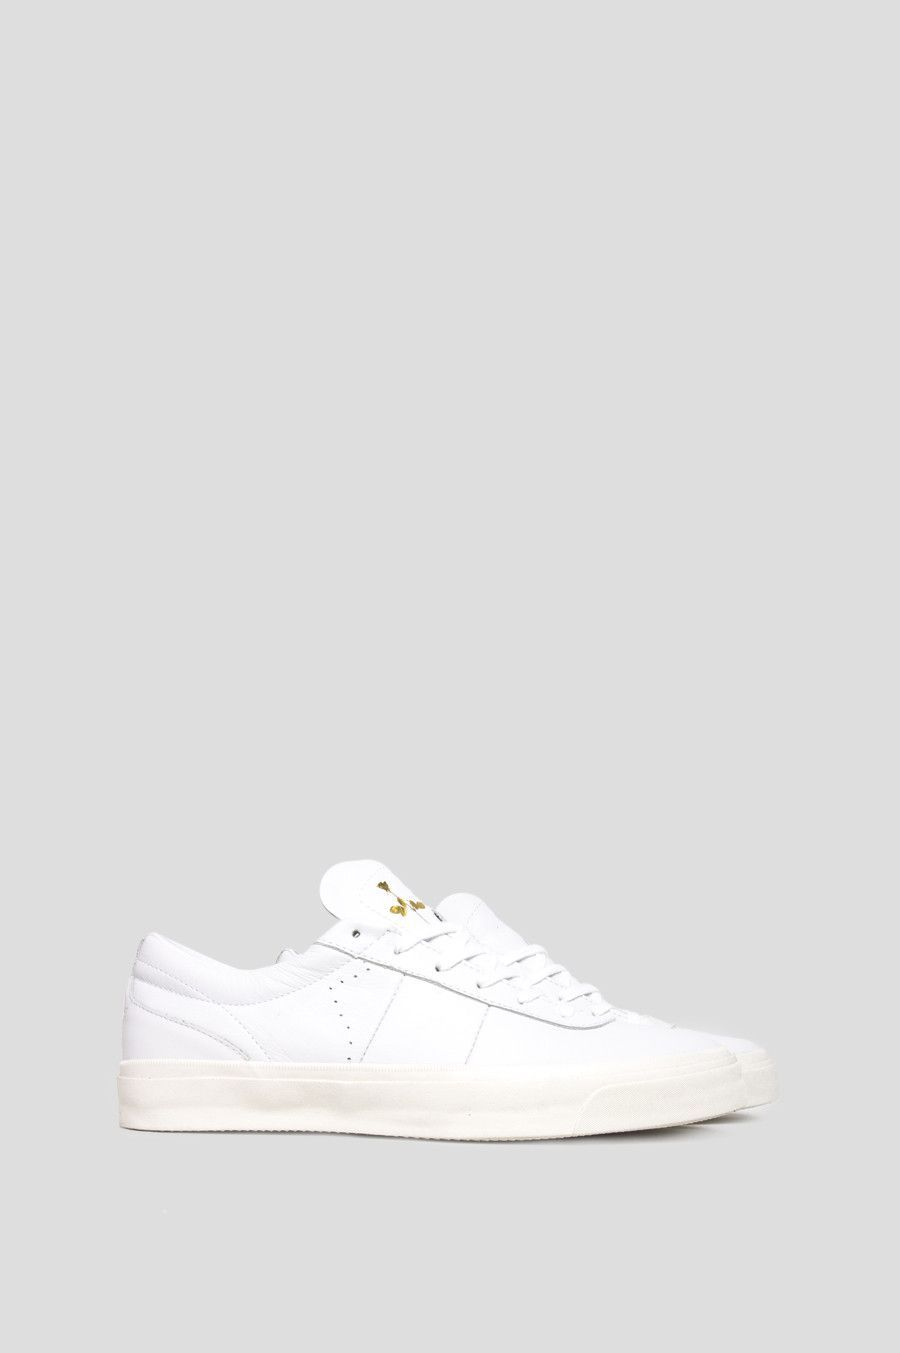 849ff98f22234a ... CONVERSE ONE STAR CC PRO OX SAGE ELSESSER WHITE discount 80664 28c3b  Converse  CONS ...